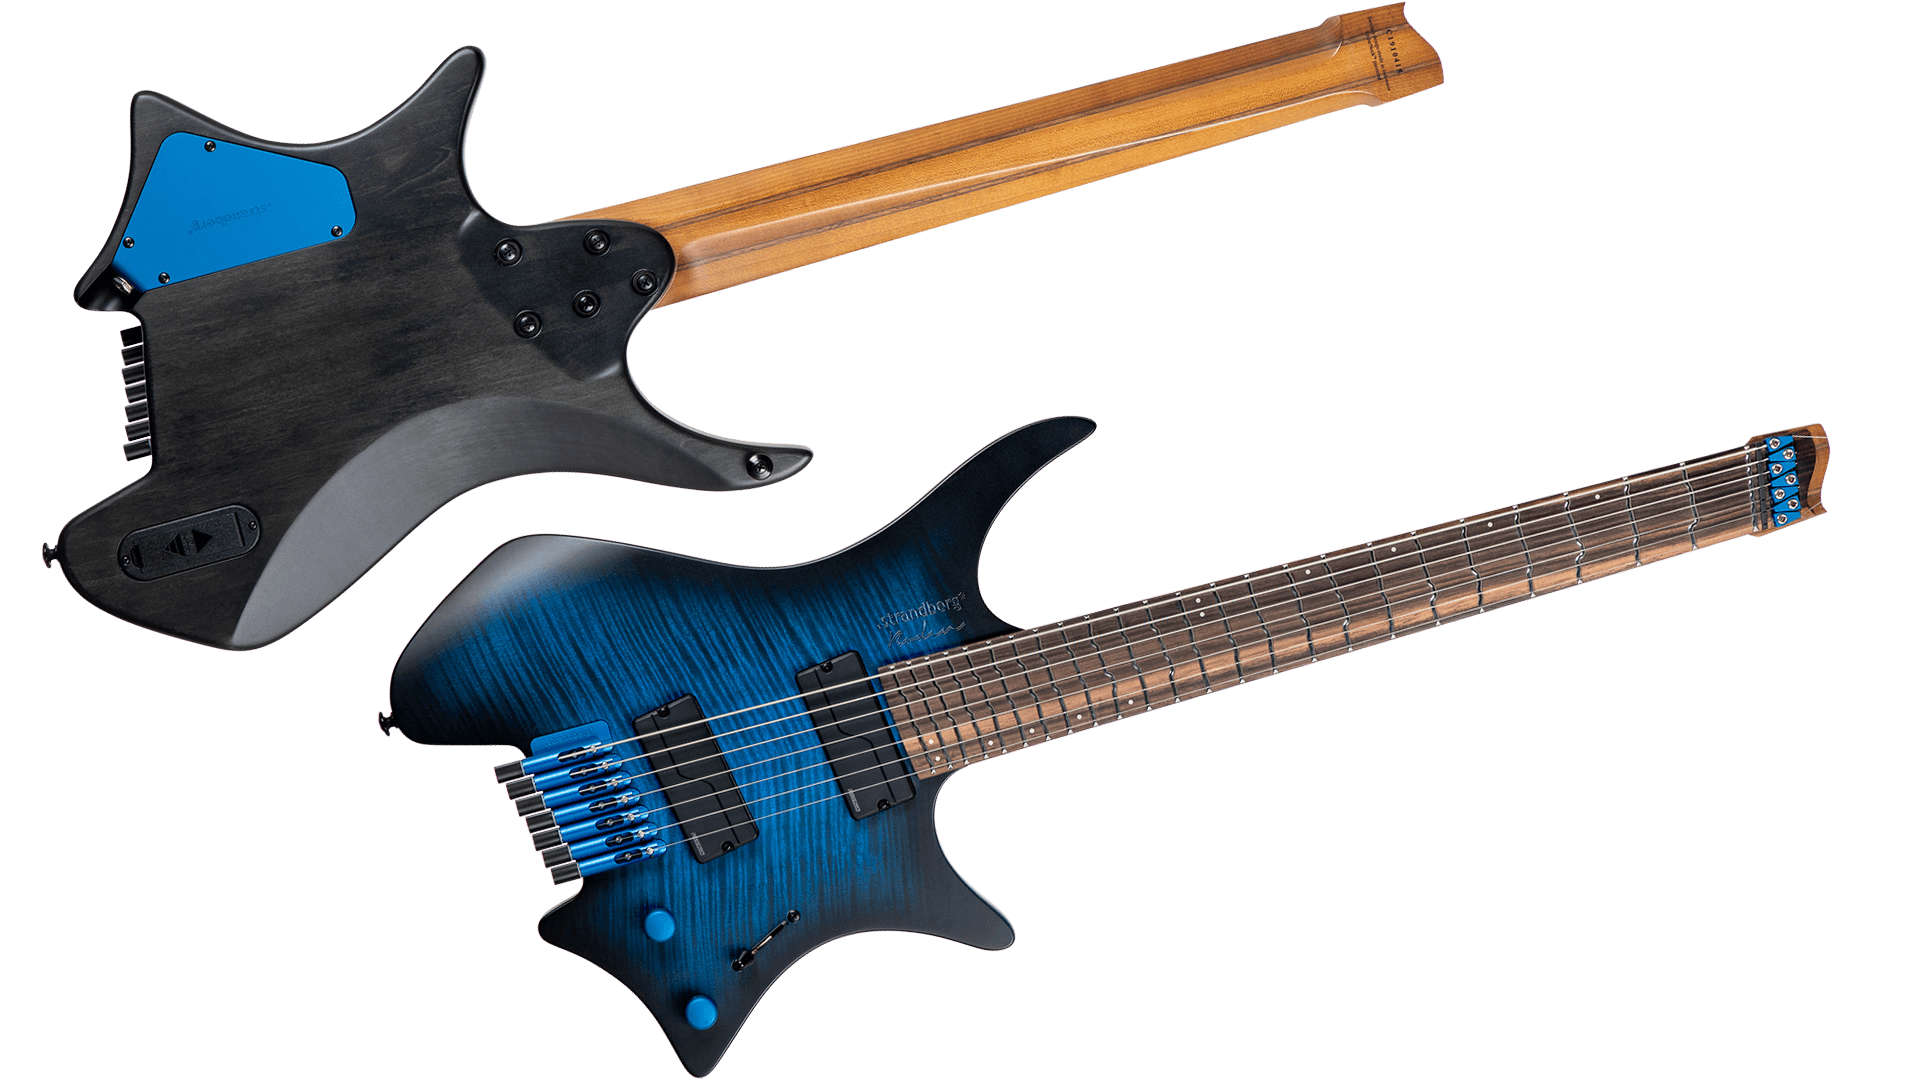 True temp blue burst 7 string headless guitar front and back view